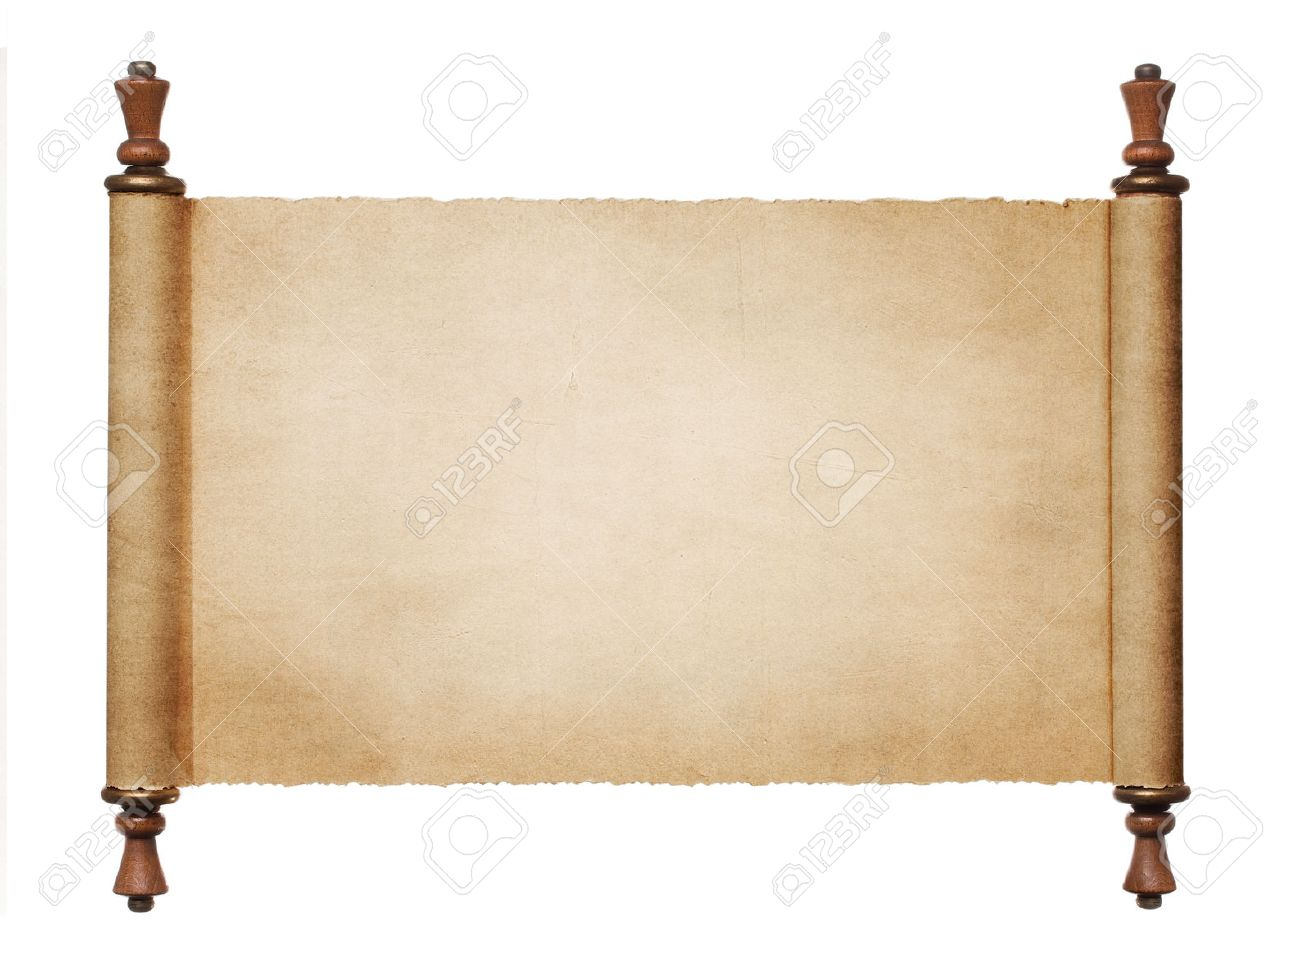 Vintage Blank Paper Scroll Isolated On White Background With Stock